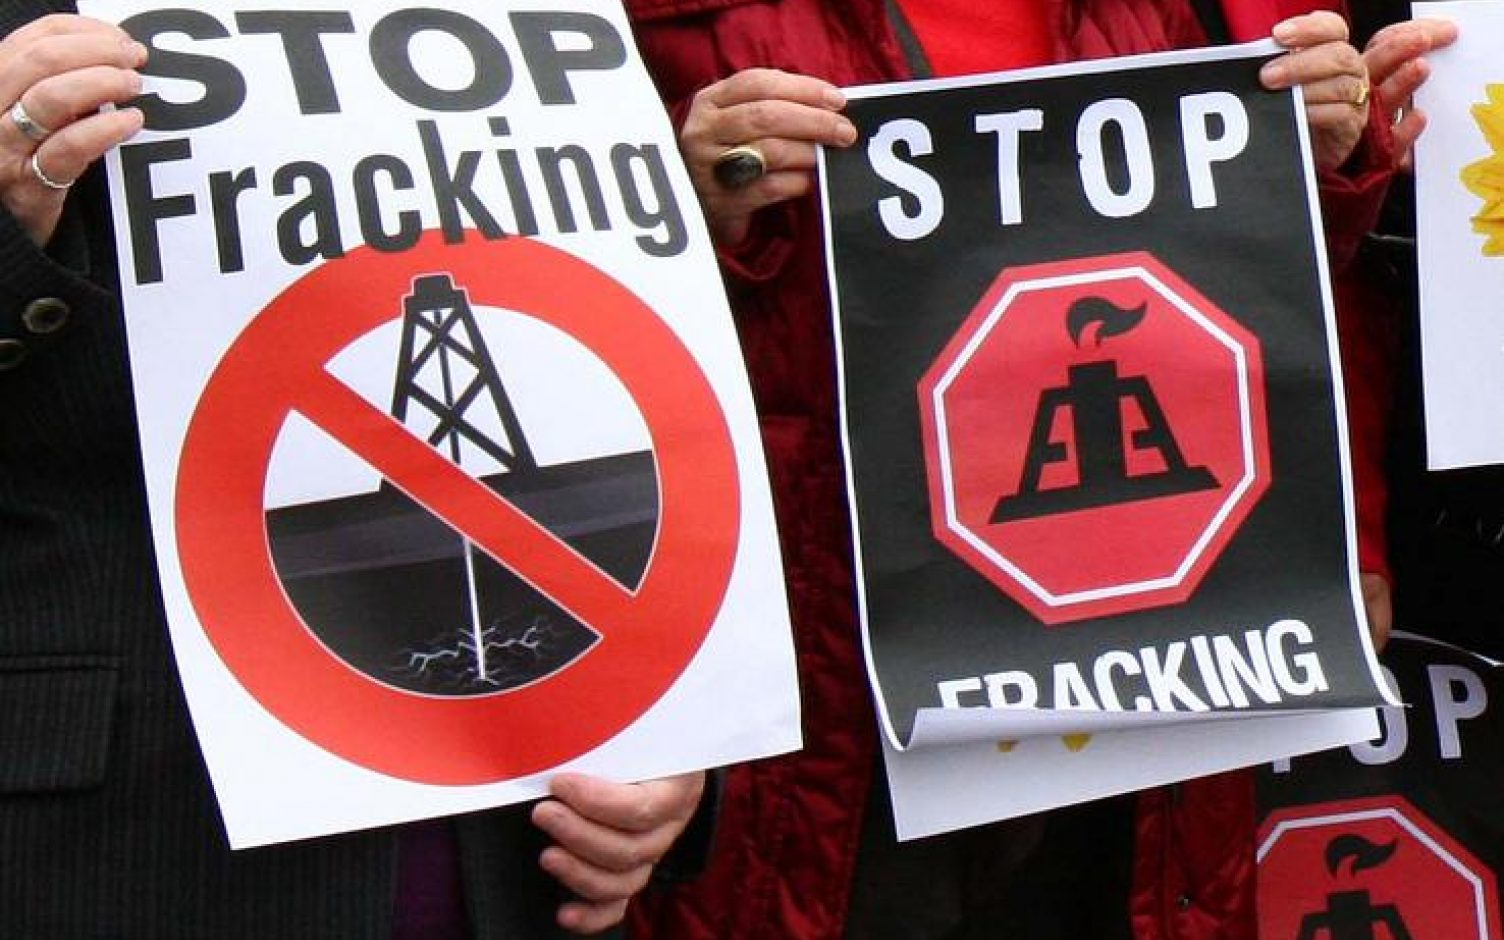 Shale companies to be allowed underground drilling access in return for community payments